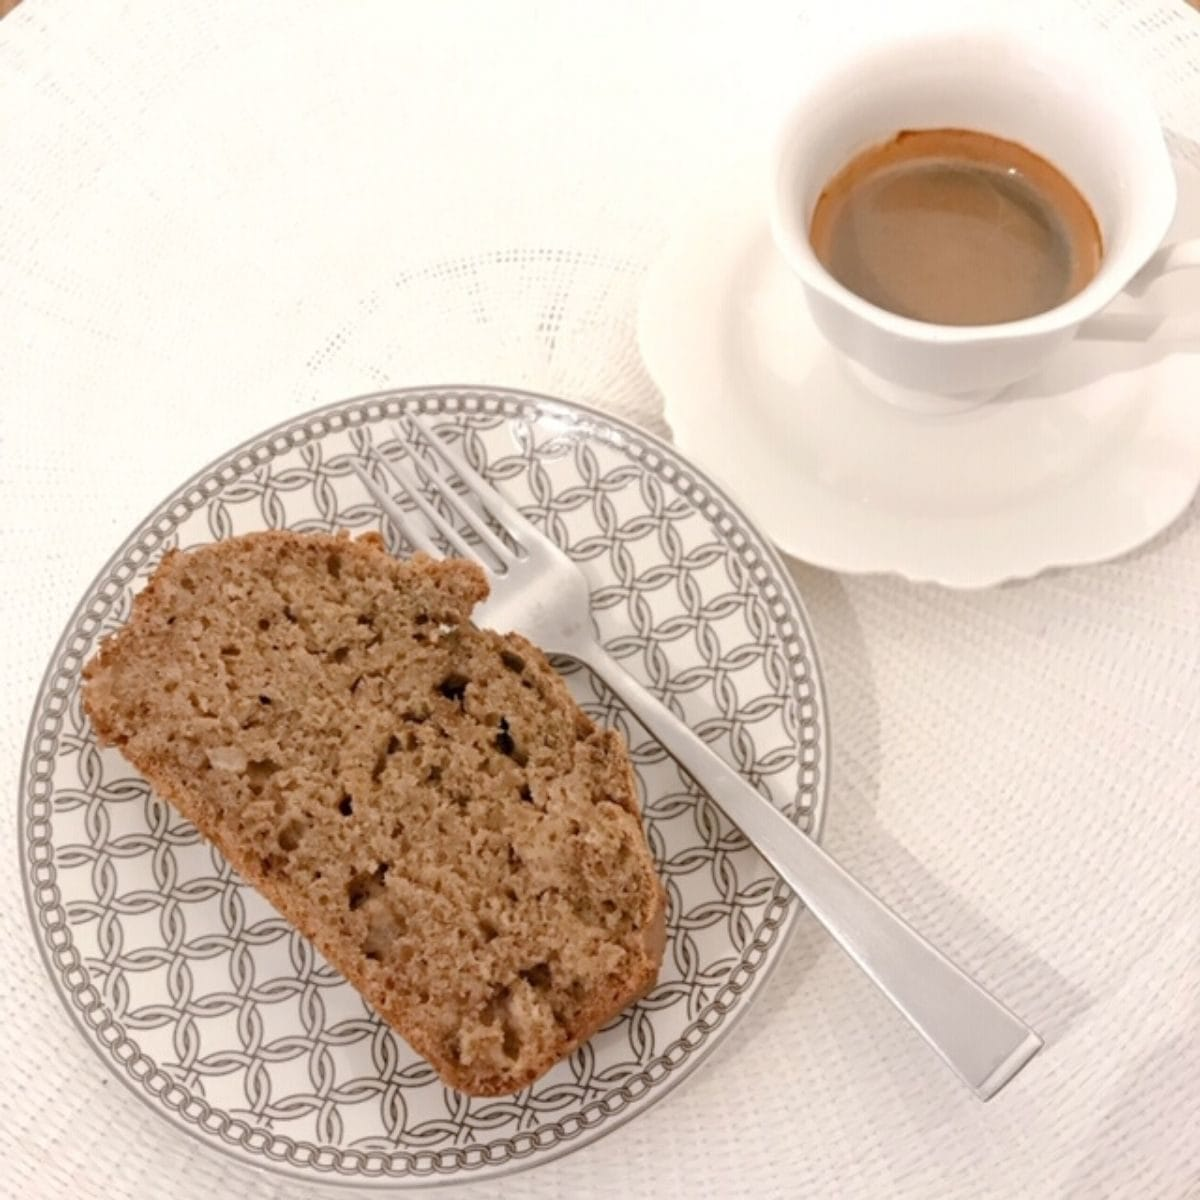 Sliced banana bread with cup of coffee